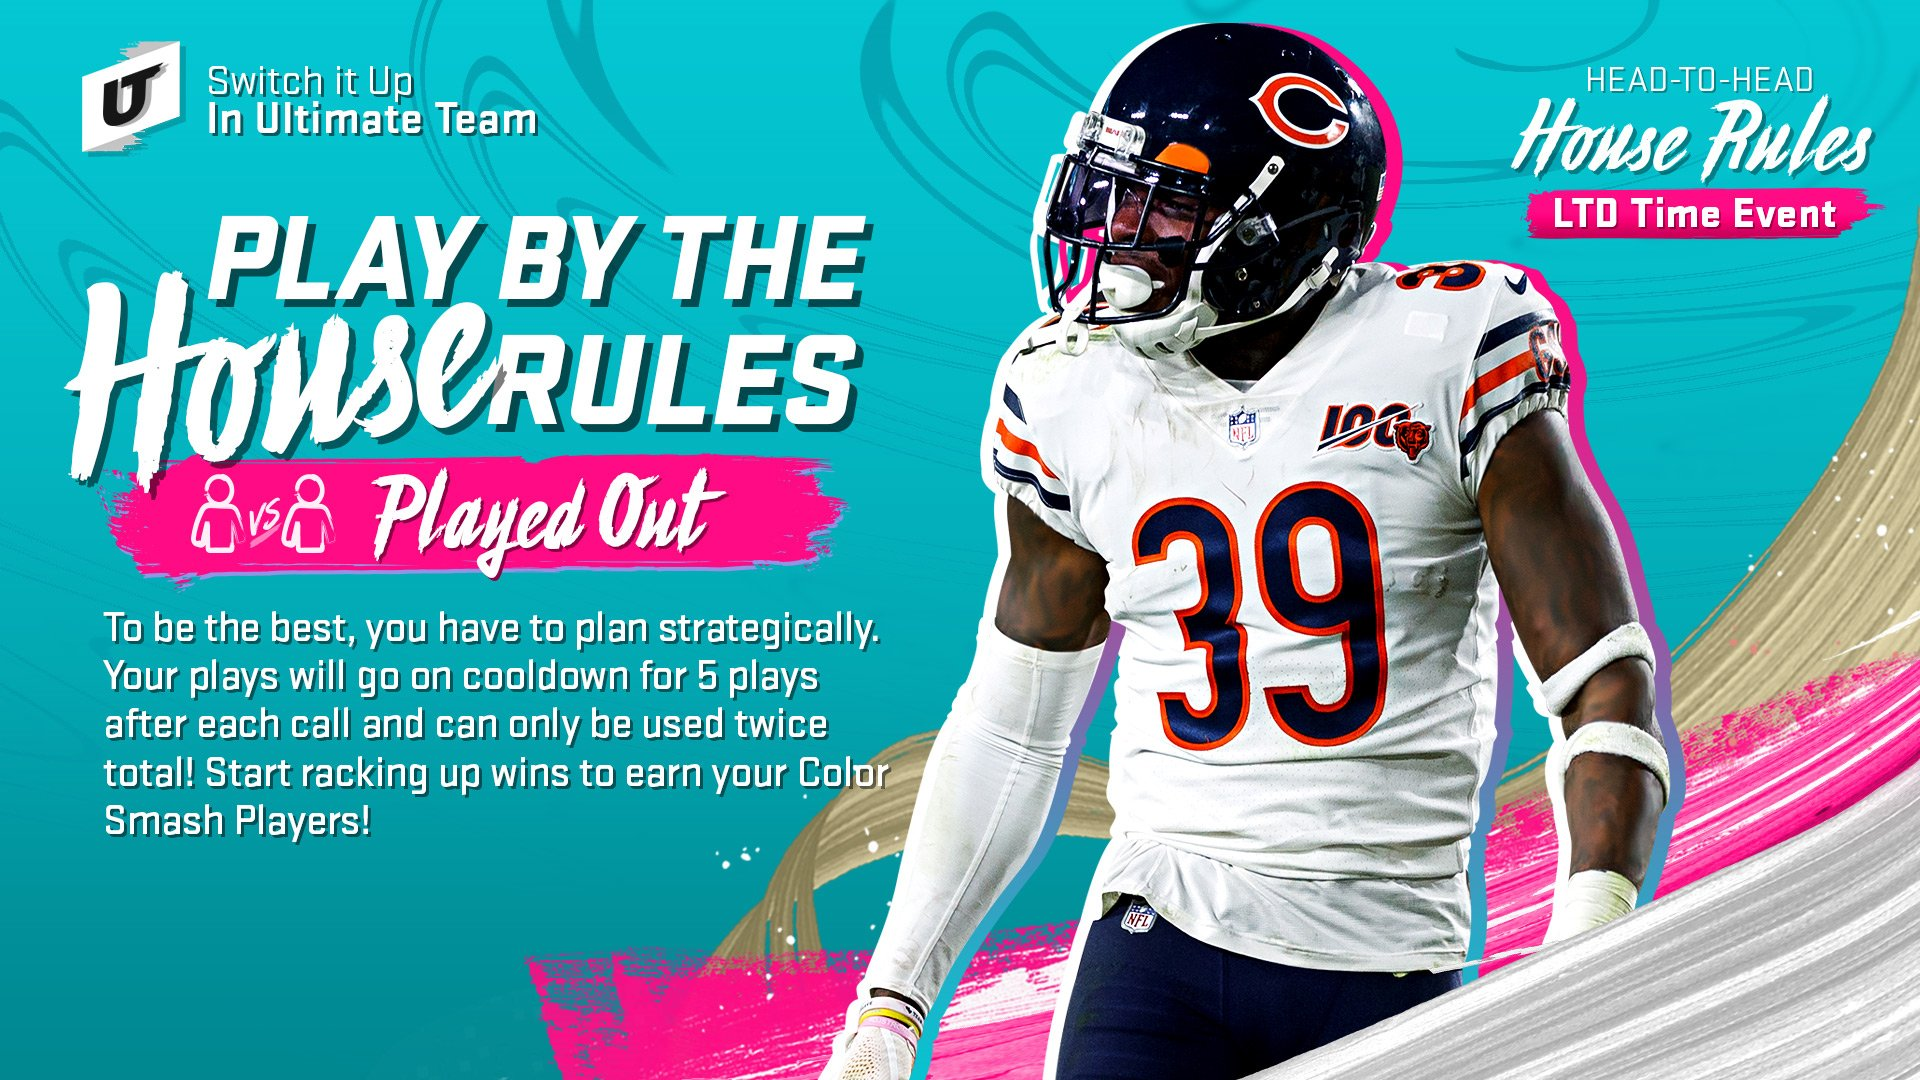 madden 20 house rules played out